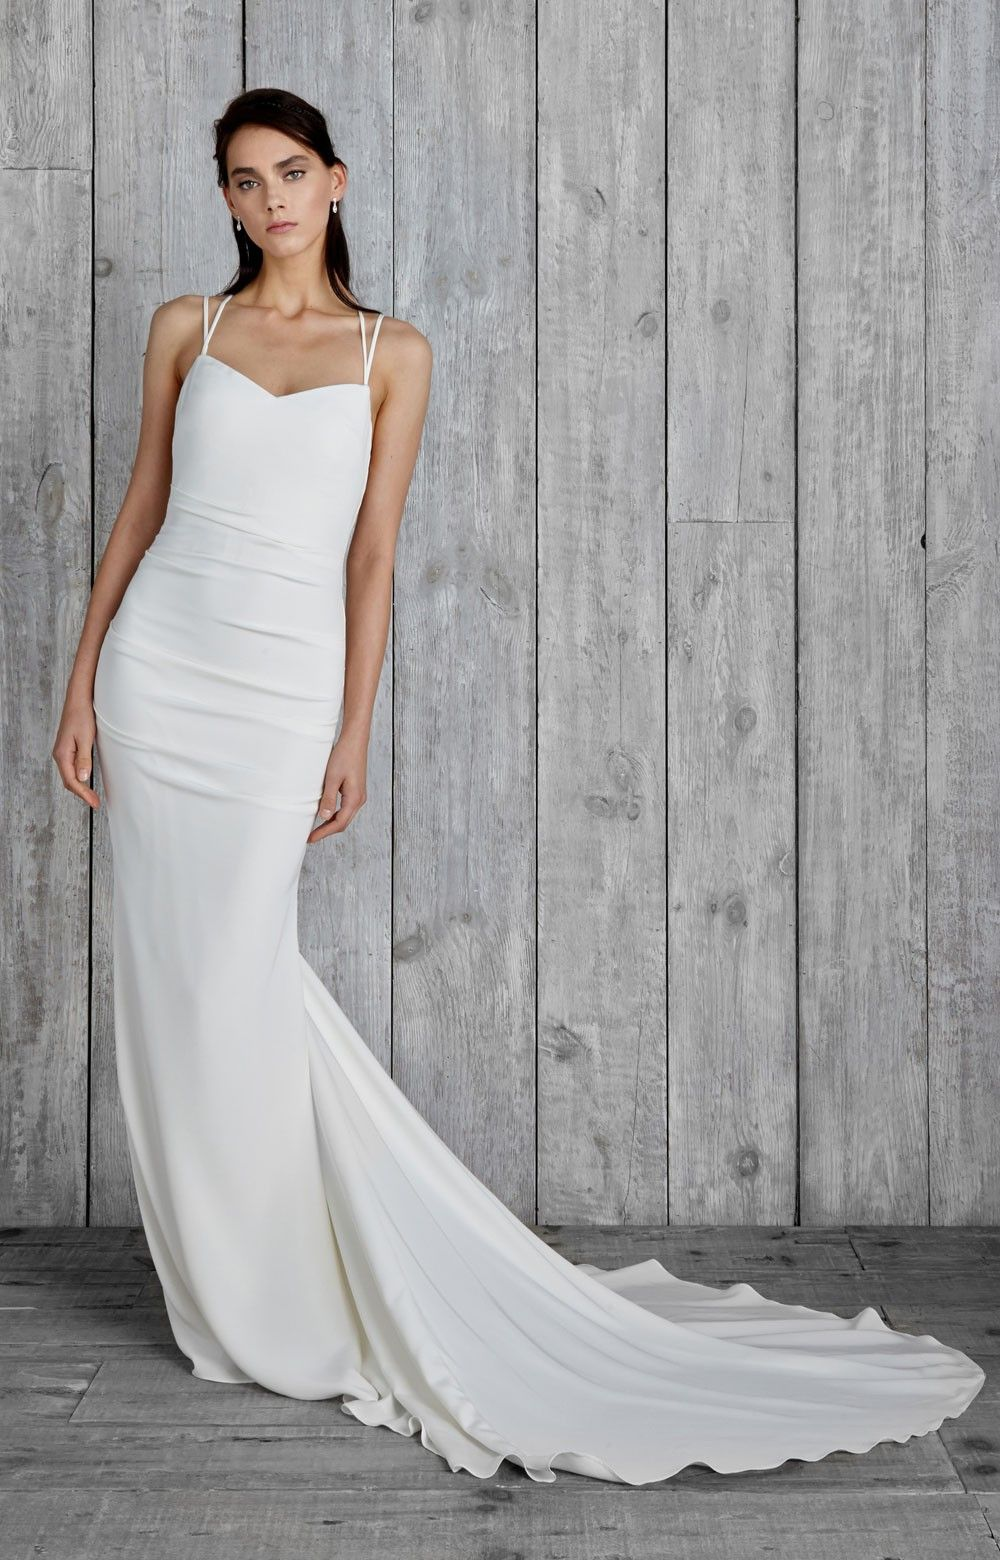 Nicole Miller Celine Bridal Gown | Celine, Bridal gowns and Gowns